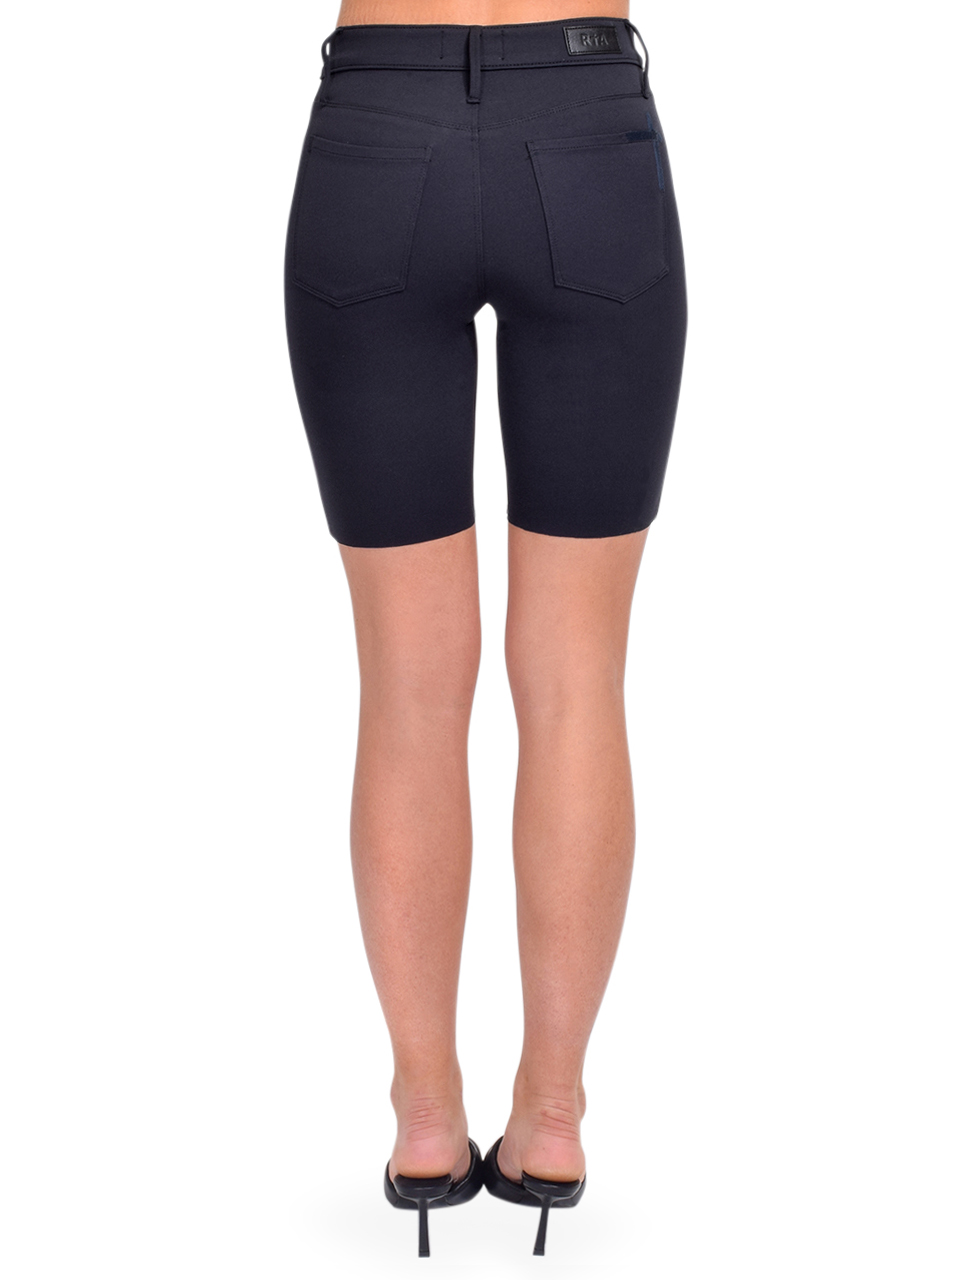 RTA Toure Cycle Short in Navy Back View